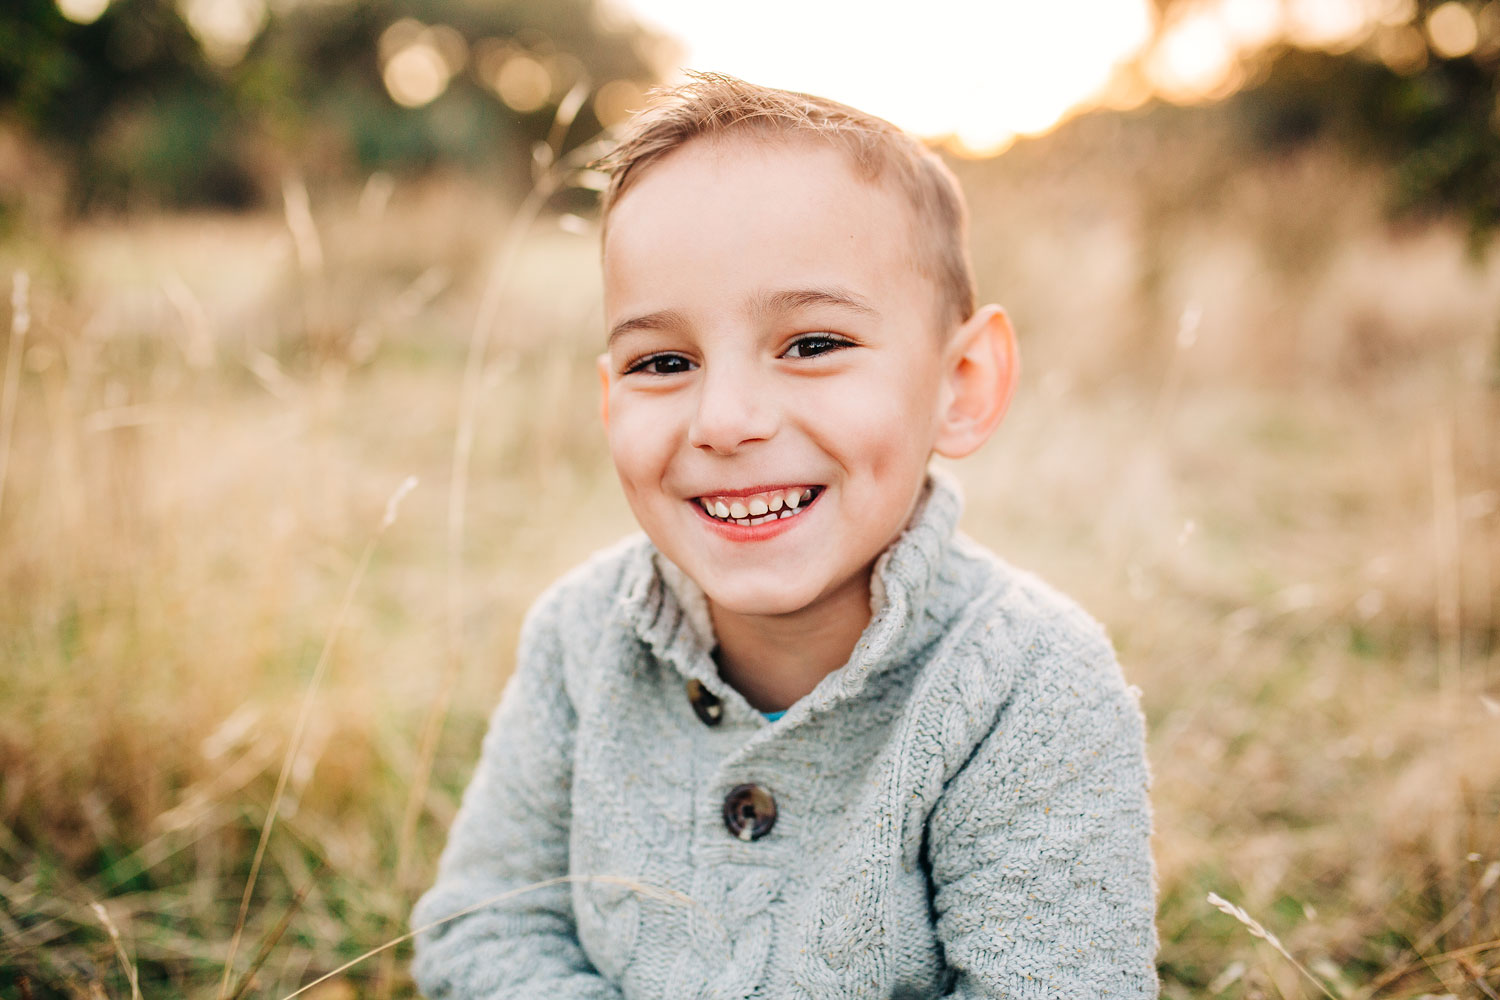 A young boy smiles joyfully during a family photo session with Amy Wright Photography, based out of Roseville, Rocklin, and Sacramento, California.